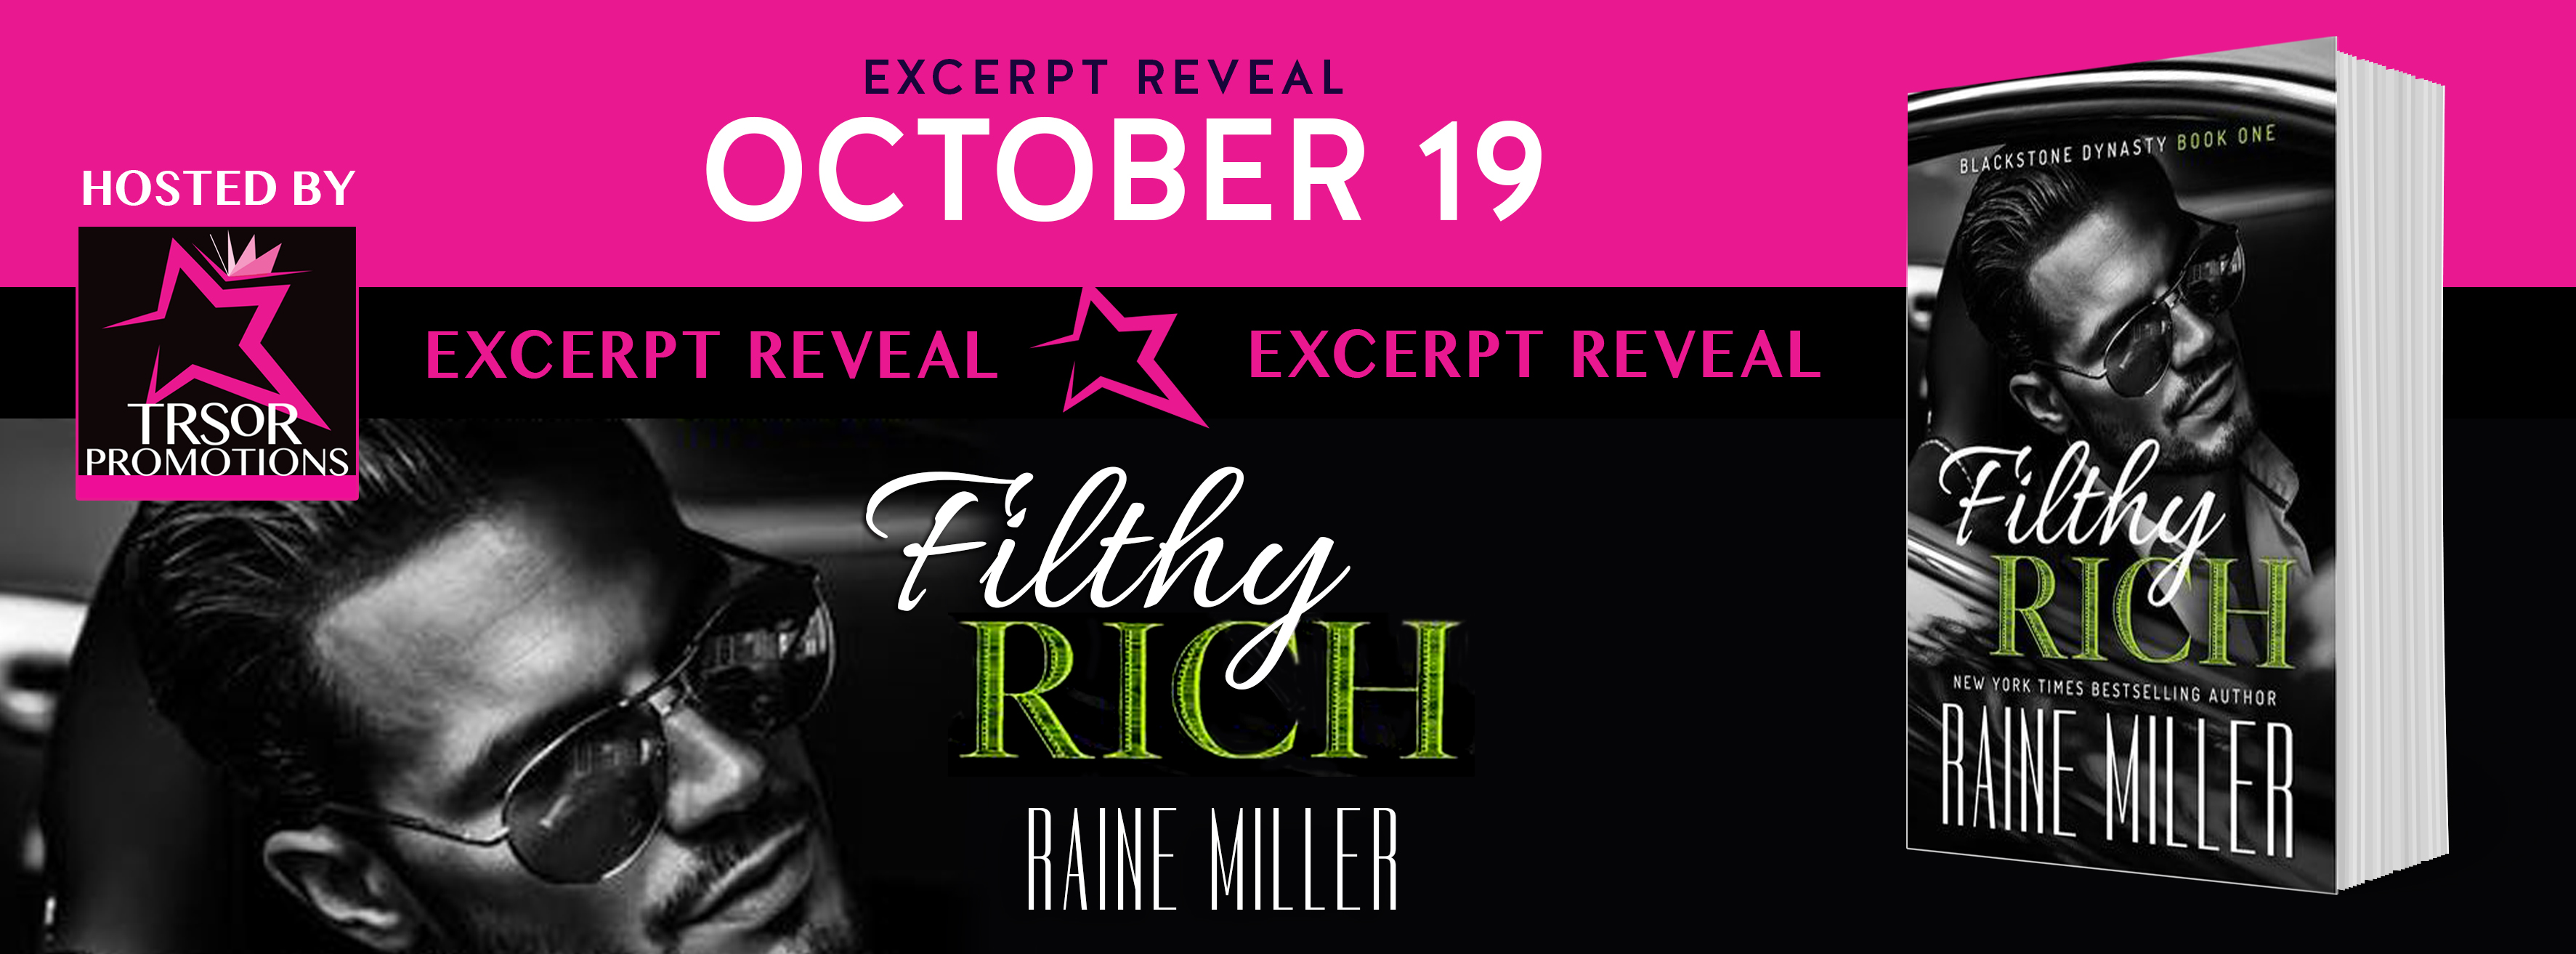 Filthy Rich by Raine Miller #ExcerptReveal